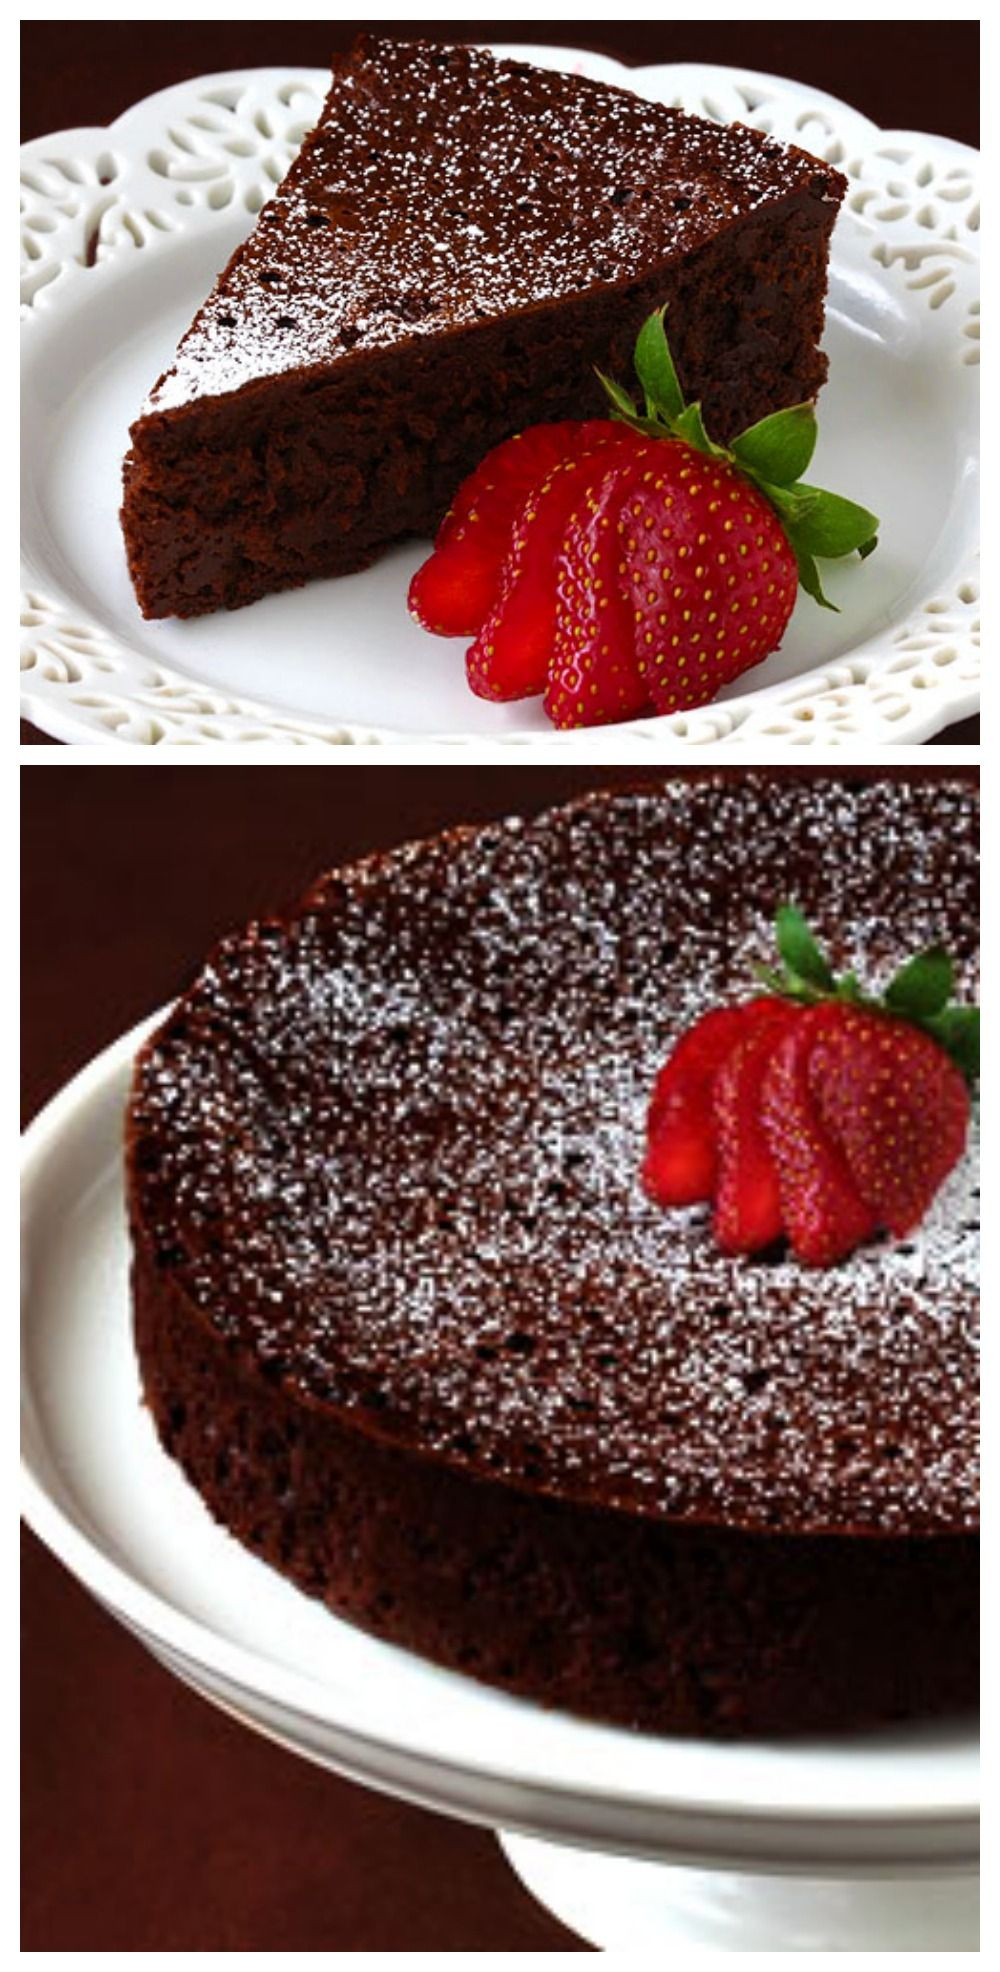 Flourless Chocolate Cake Gimme Some Oven Recipe Flourless Chocolate Cakes Flourless Chocolate Cake Gluten Free Flourless Chocolate Cake Recipe